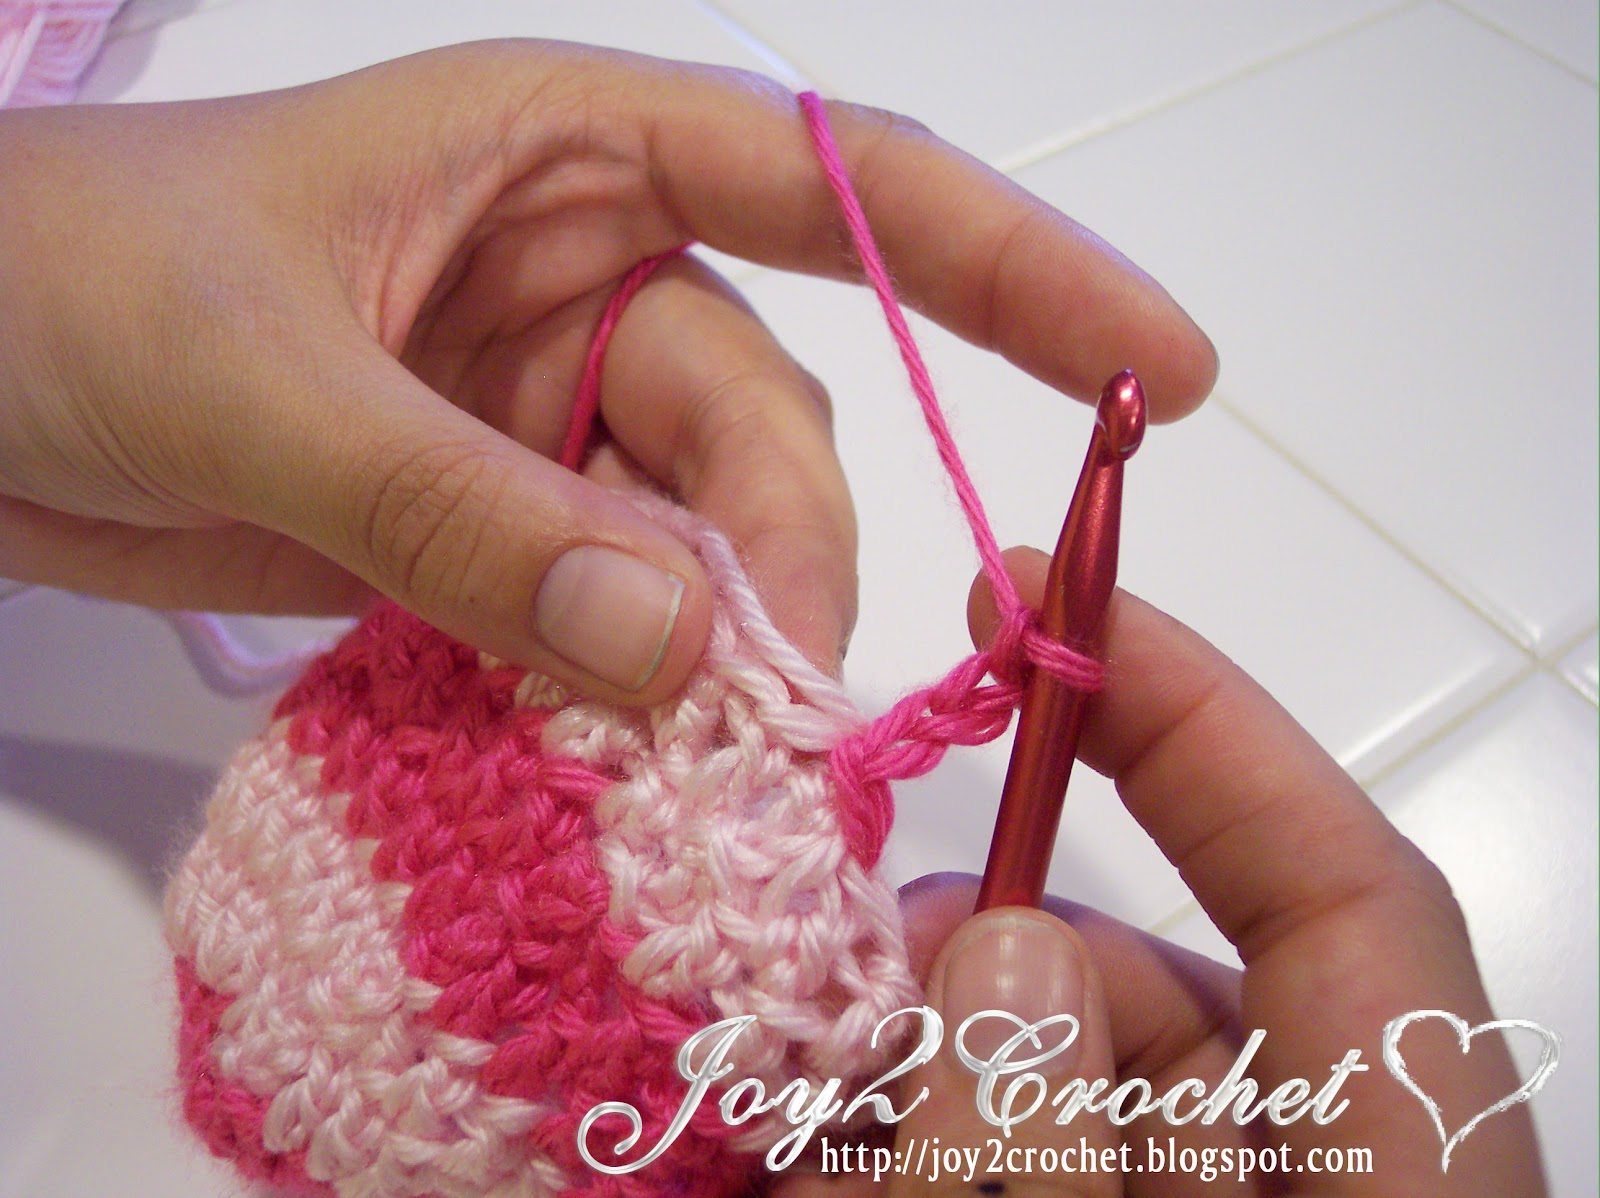 Crocheting Over Ends : Crochet: How to Change Colors while crocheting (No weaving in ends ...